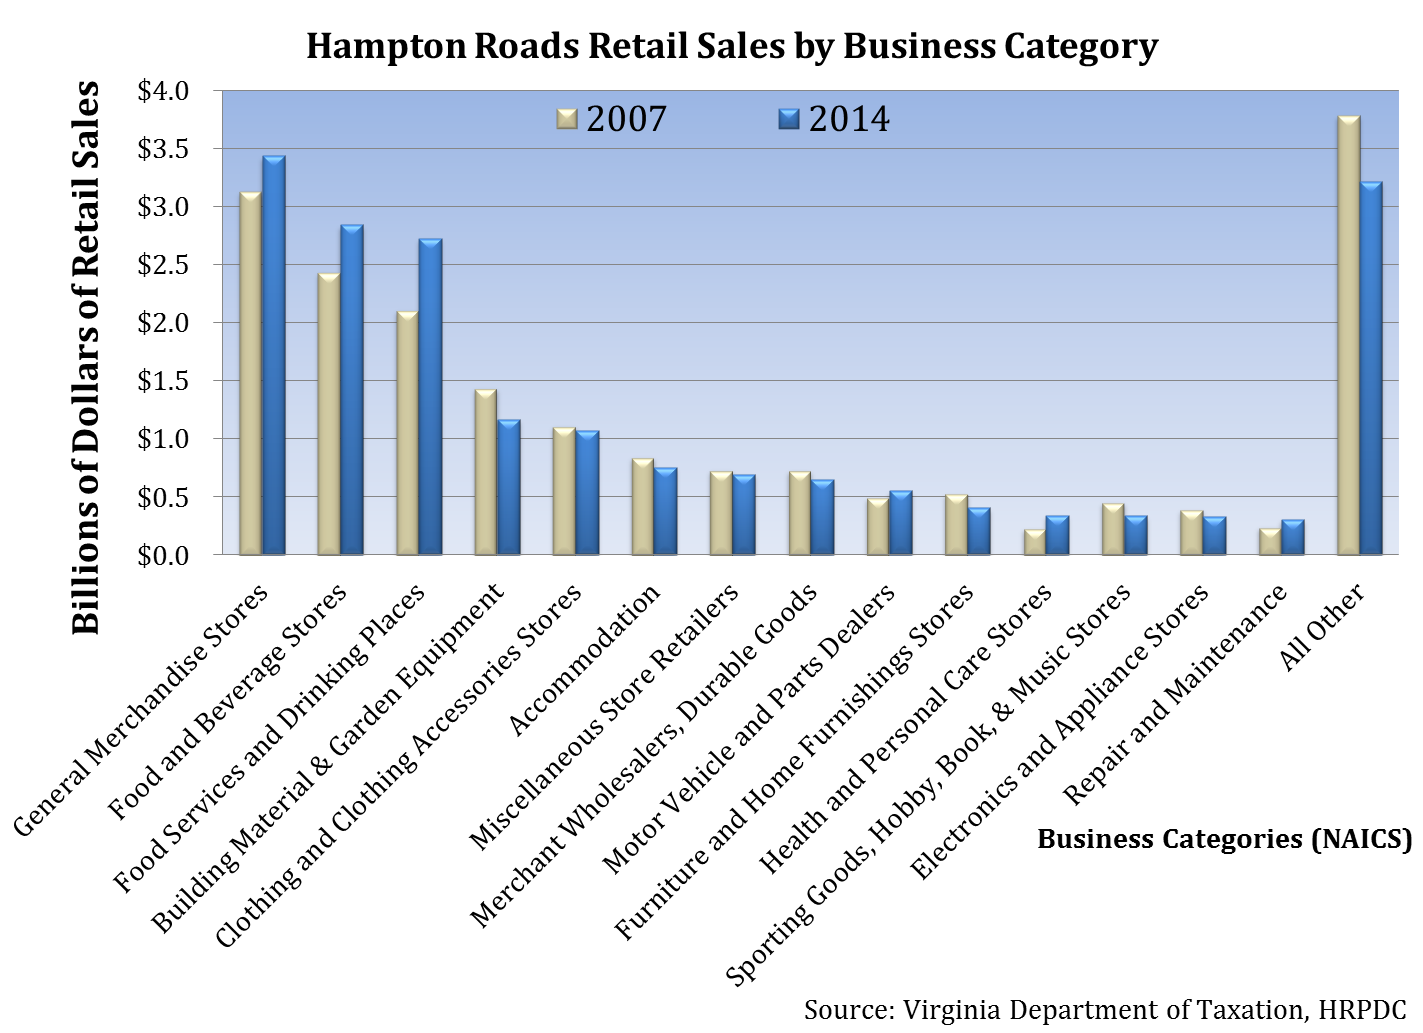 Hampton Roads Retail Sales by Business Categories